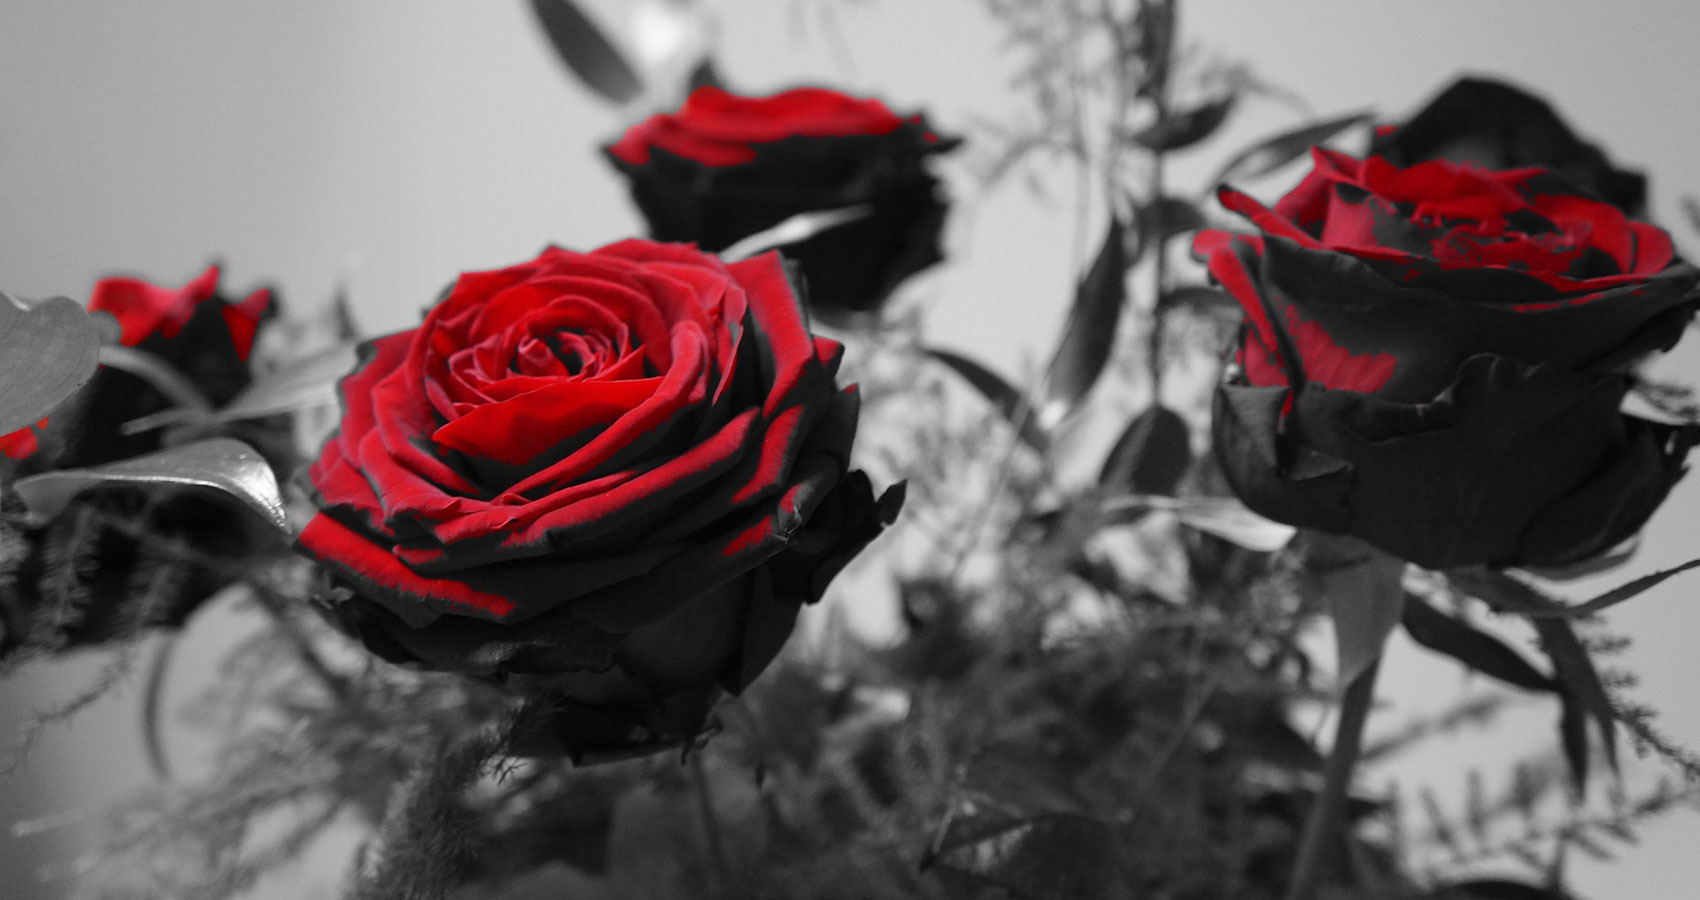 Roses Are Red, a poem written by Lisa Keeble at Spillwords.com